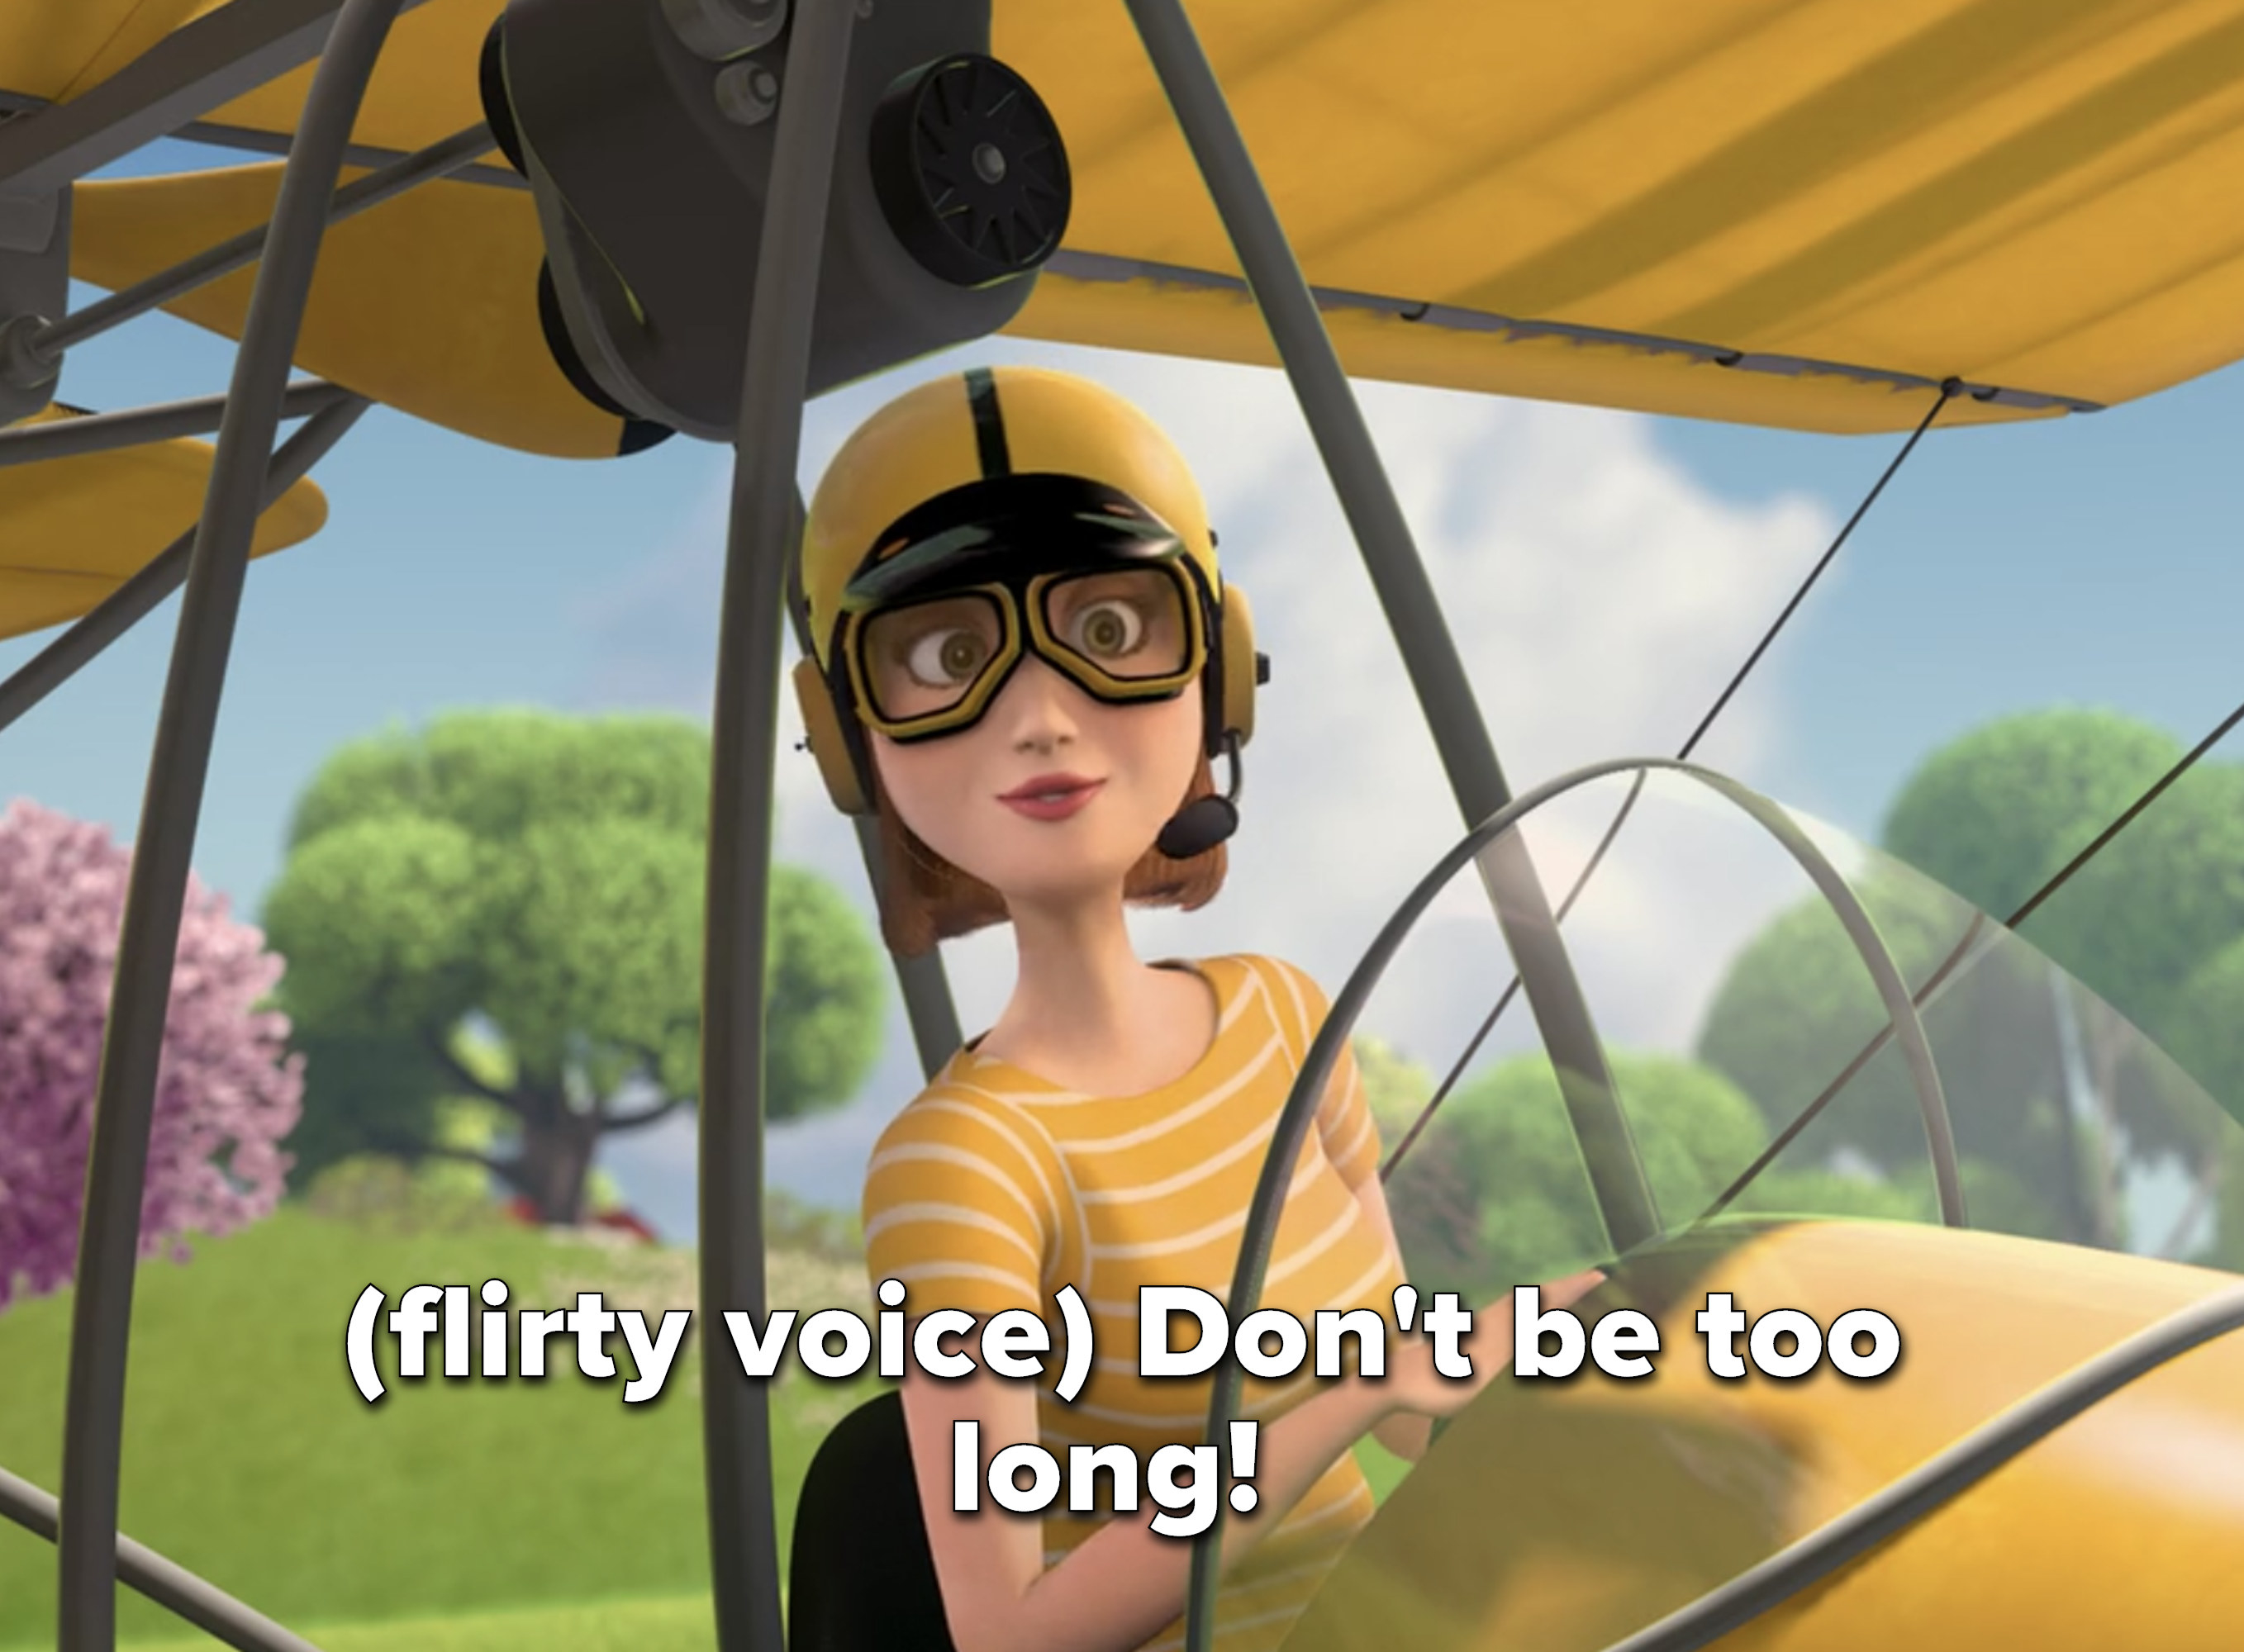 """Vanessa says """"Don't be too long!"""" in a flirty voice"""